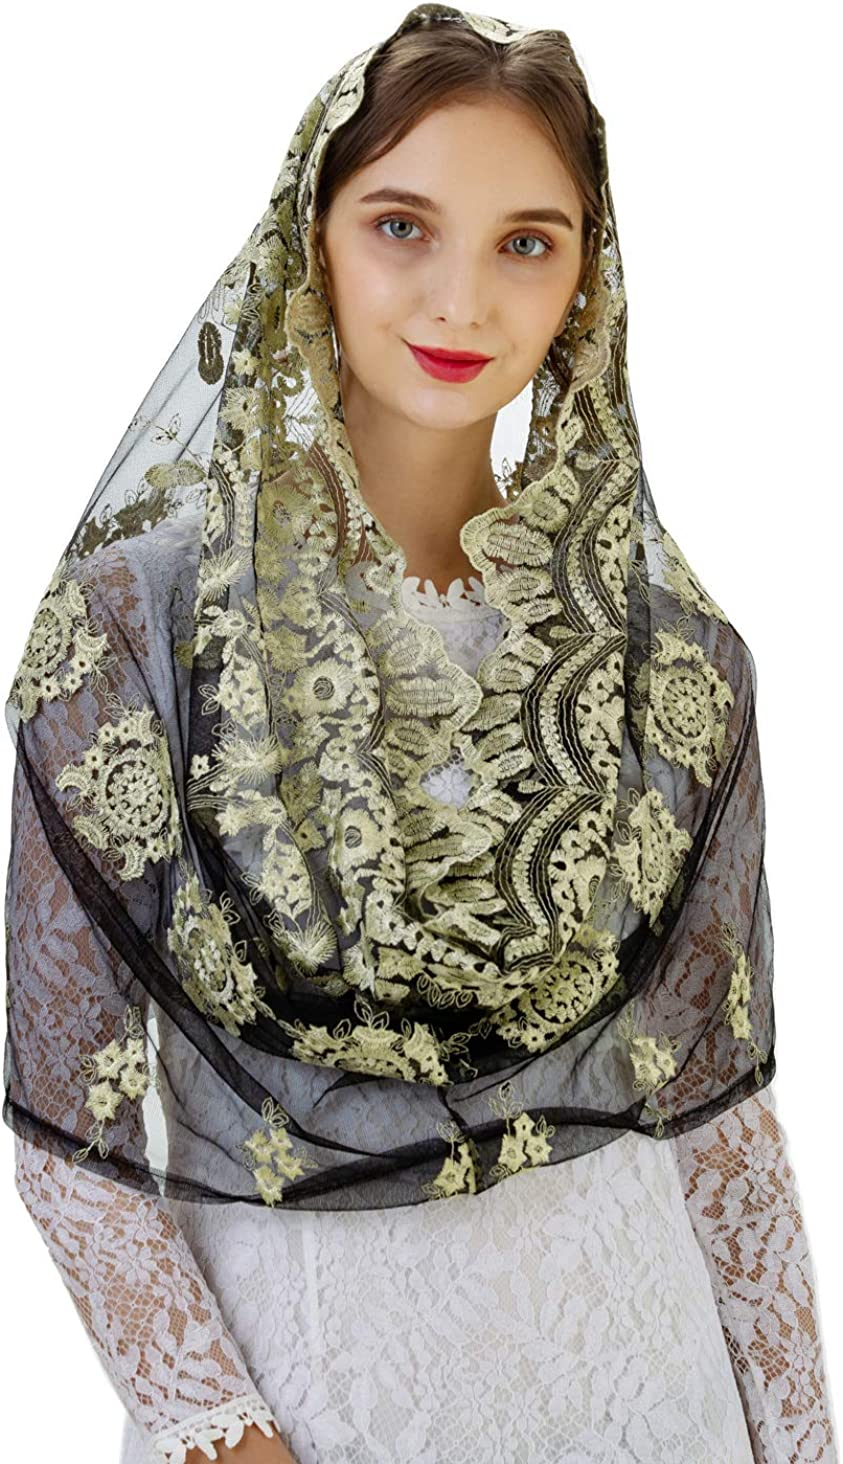 Pamor Gold Embroidered Traditional Vintage Inspired Infinity Veil Mantilla Veils Mass Head Covering